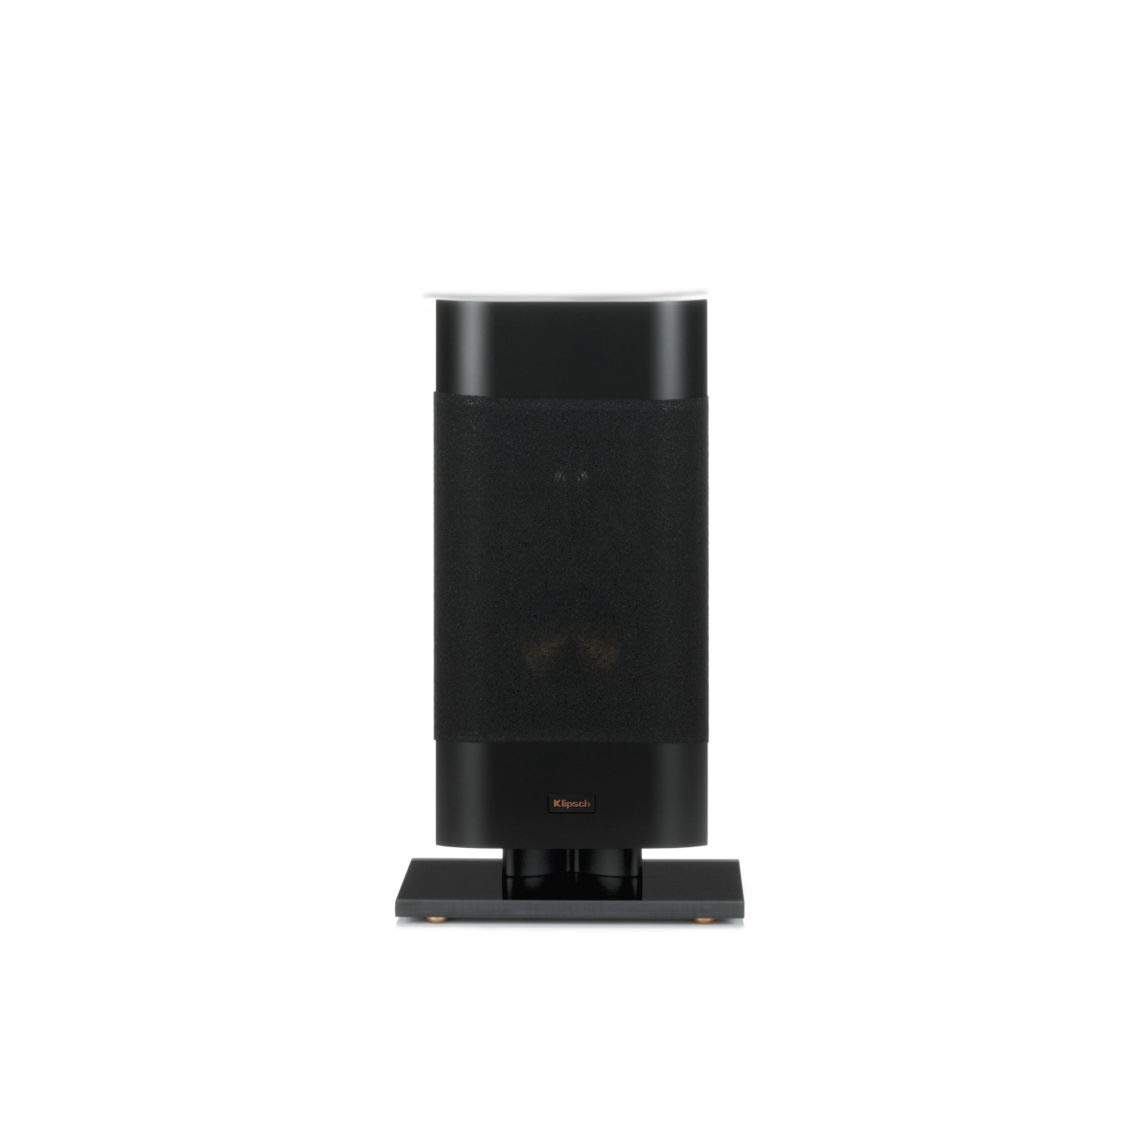 Klipsch RP-140D Black Home Speaker Matte Black by Klipsch